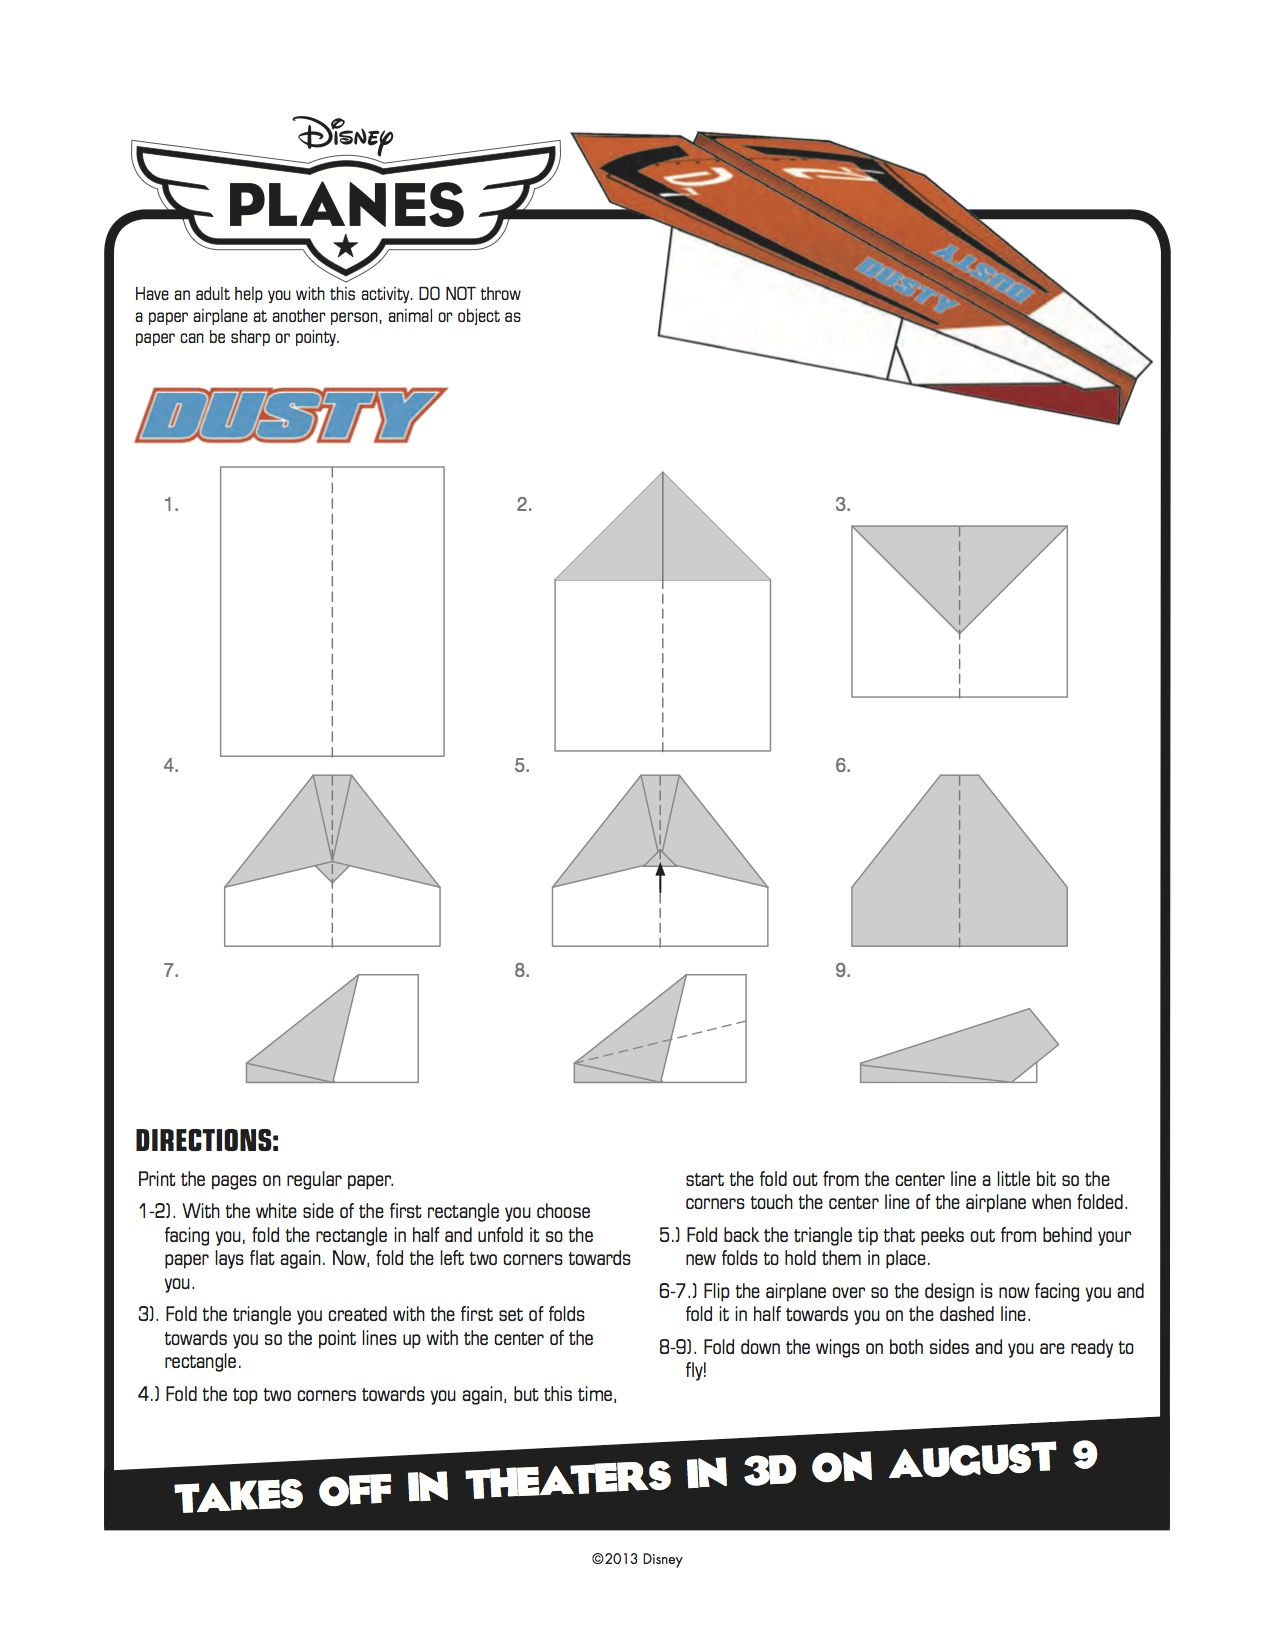 Disney Planes Printable Dusty Paper Airplane Craft